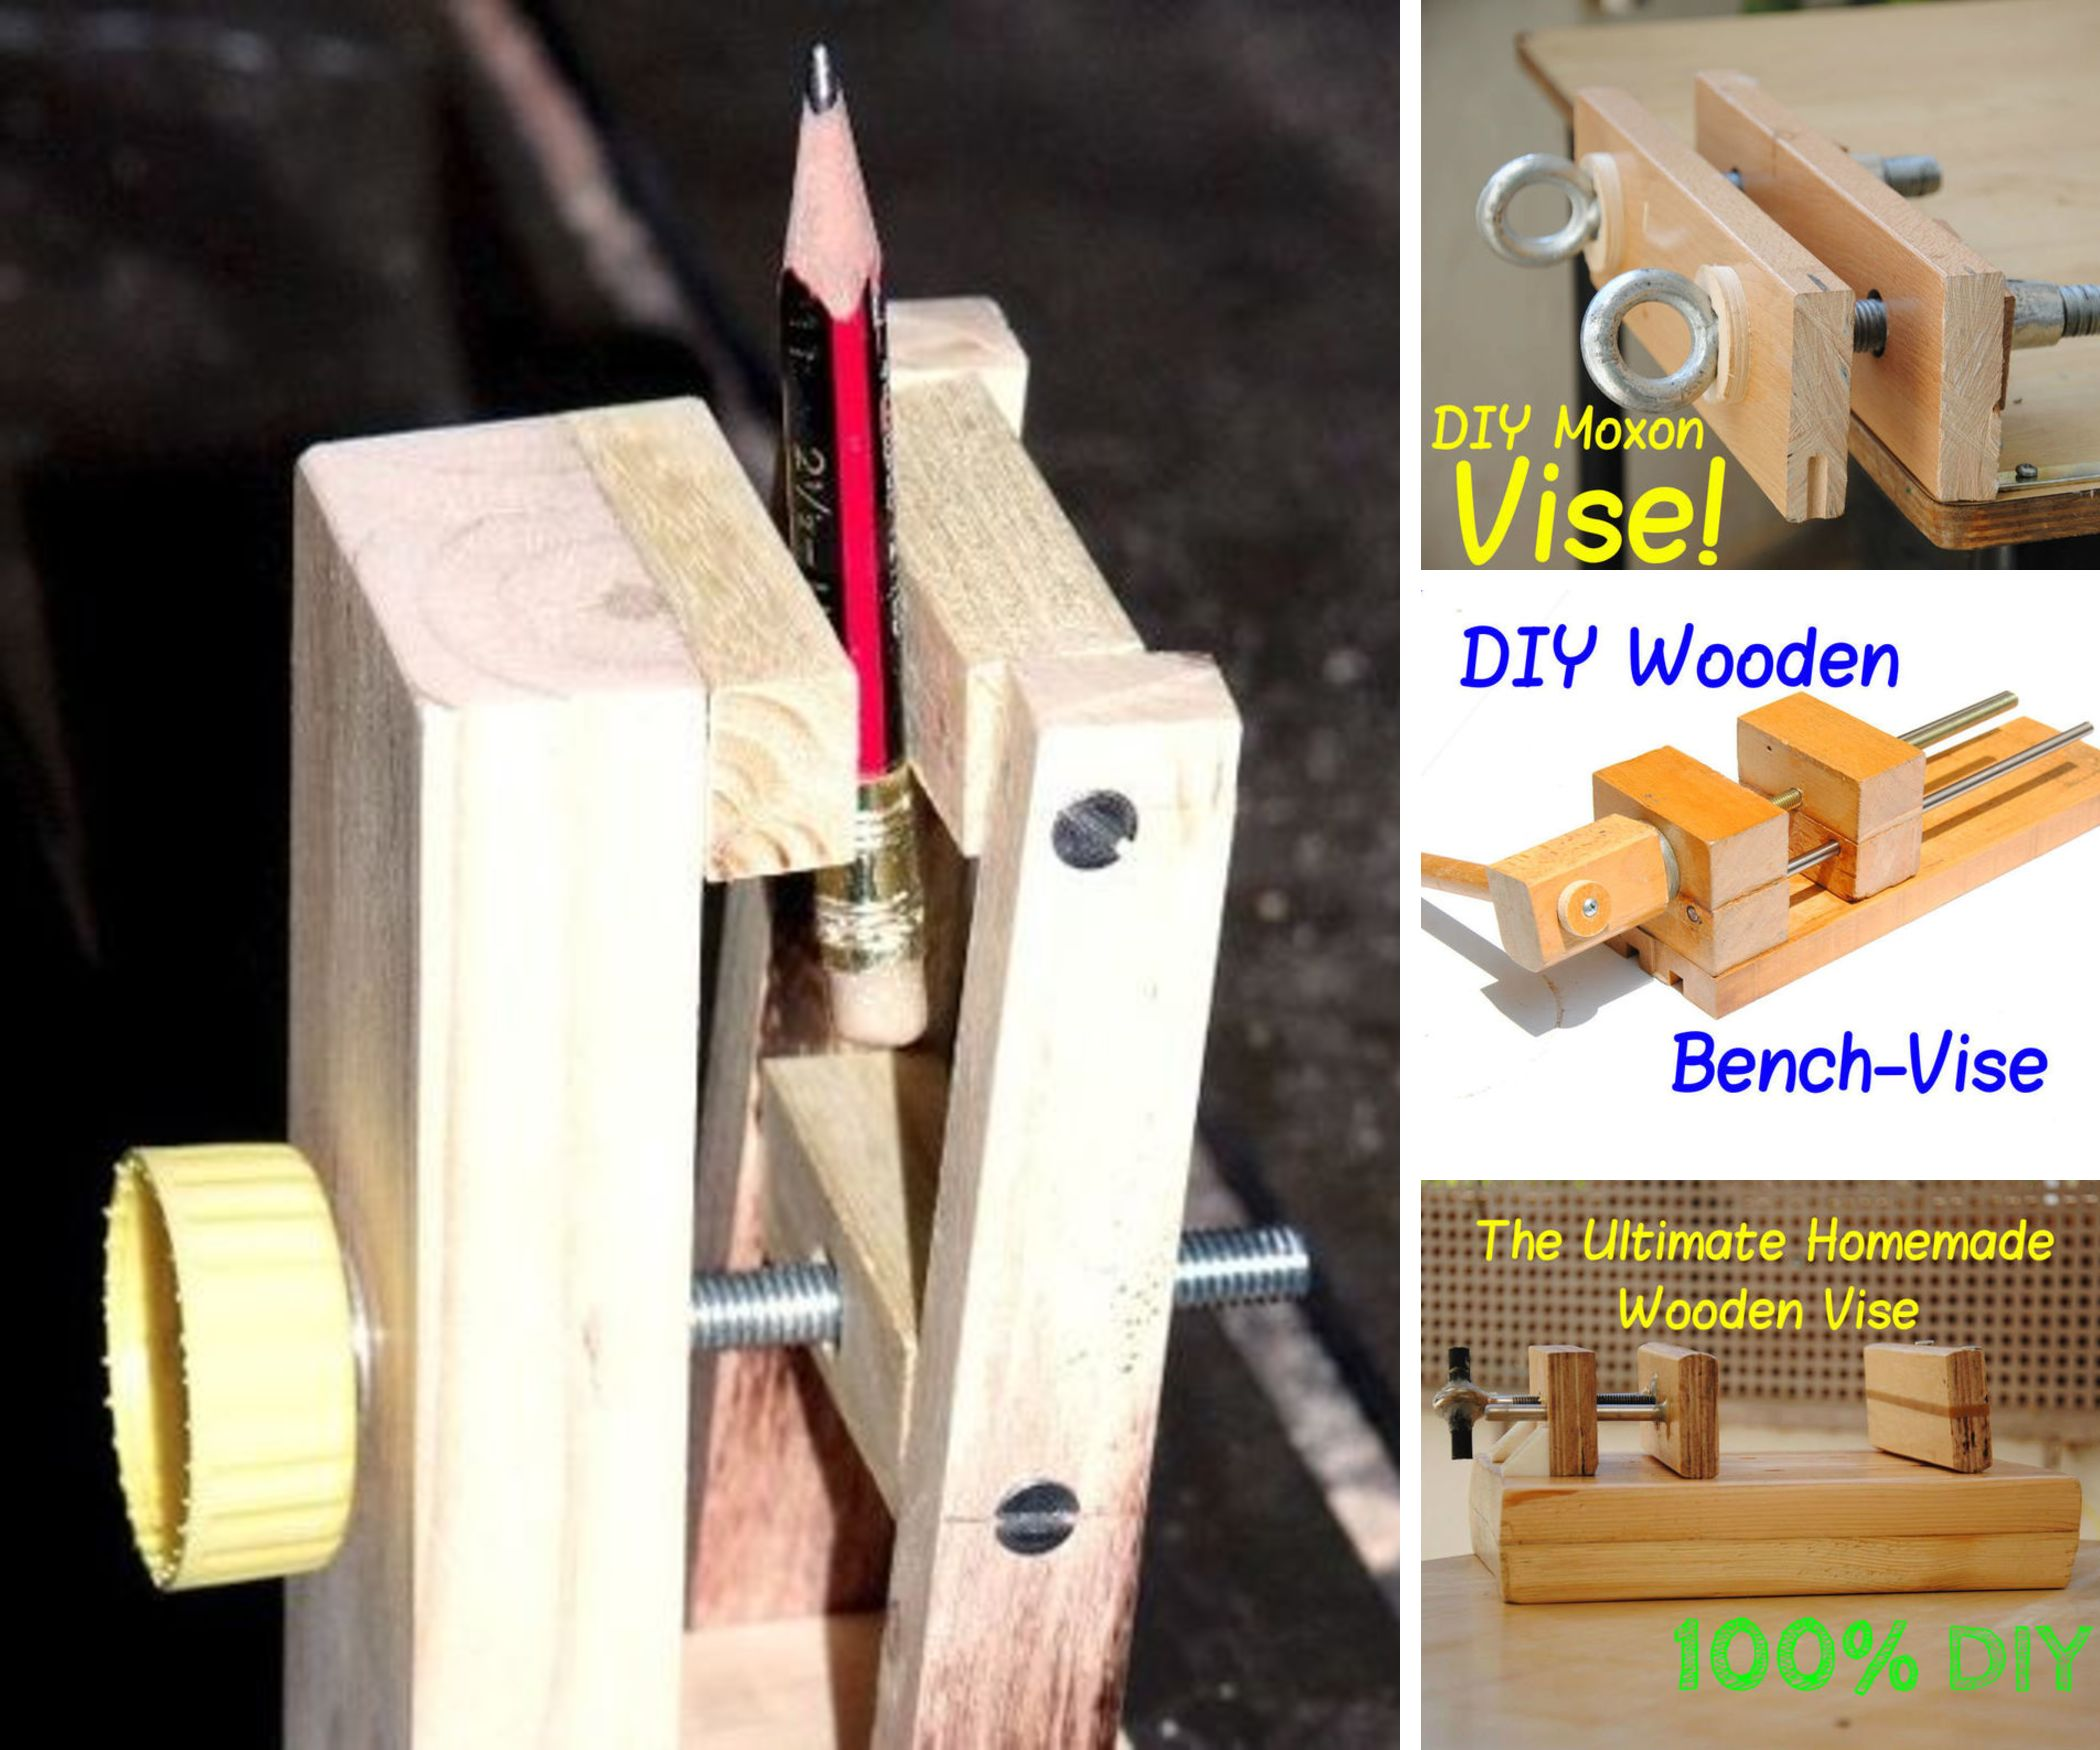 Make Your Own Bench-Vise!